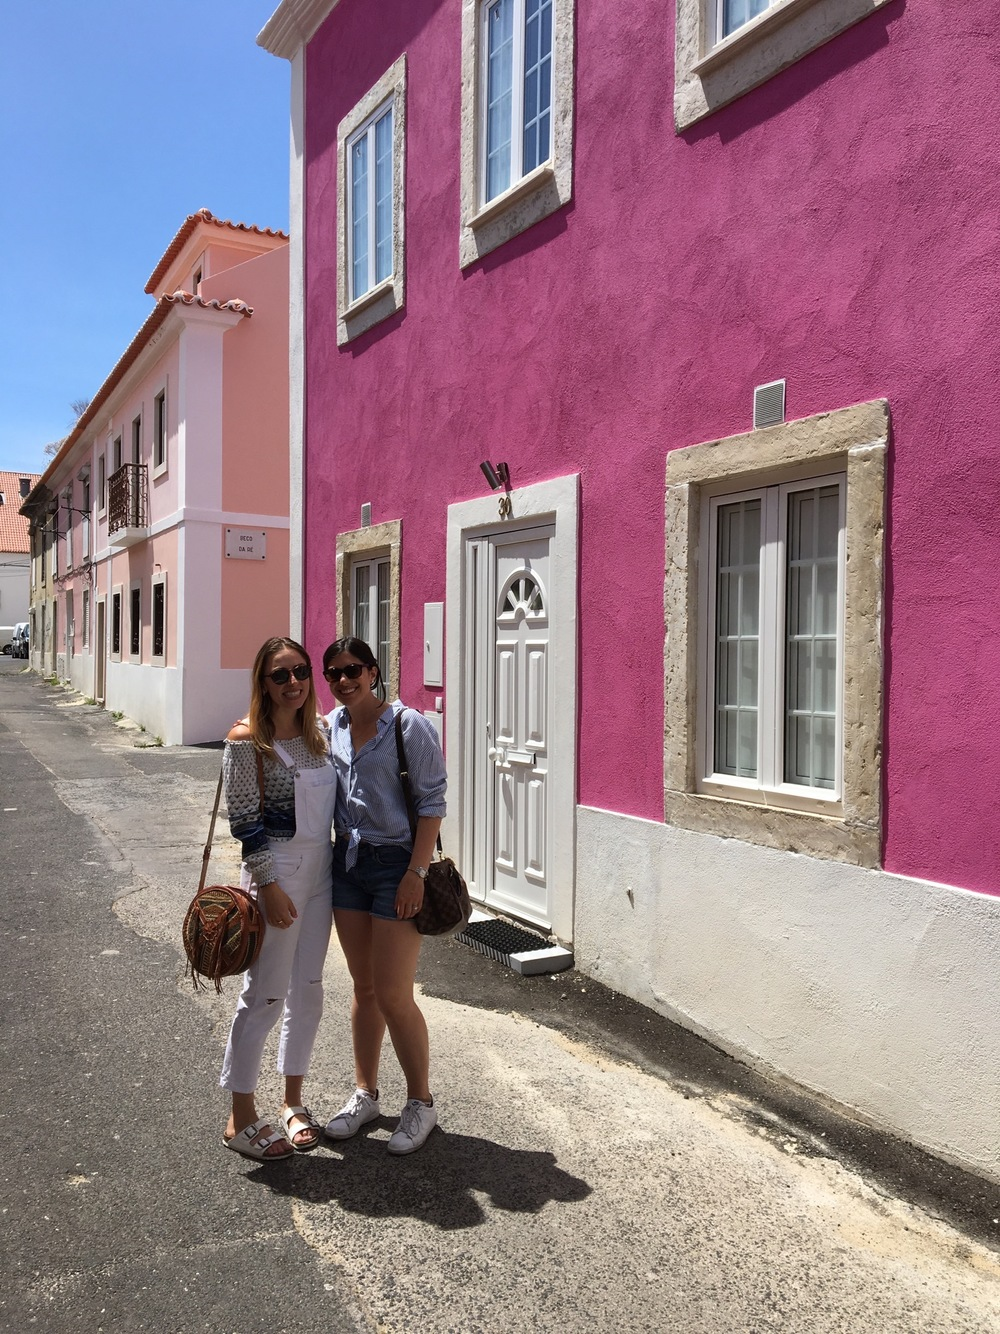 Find this gorgeous pink house right across the street from the bridge by Torre de Belém.